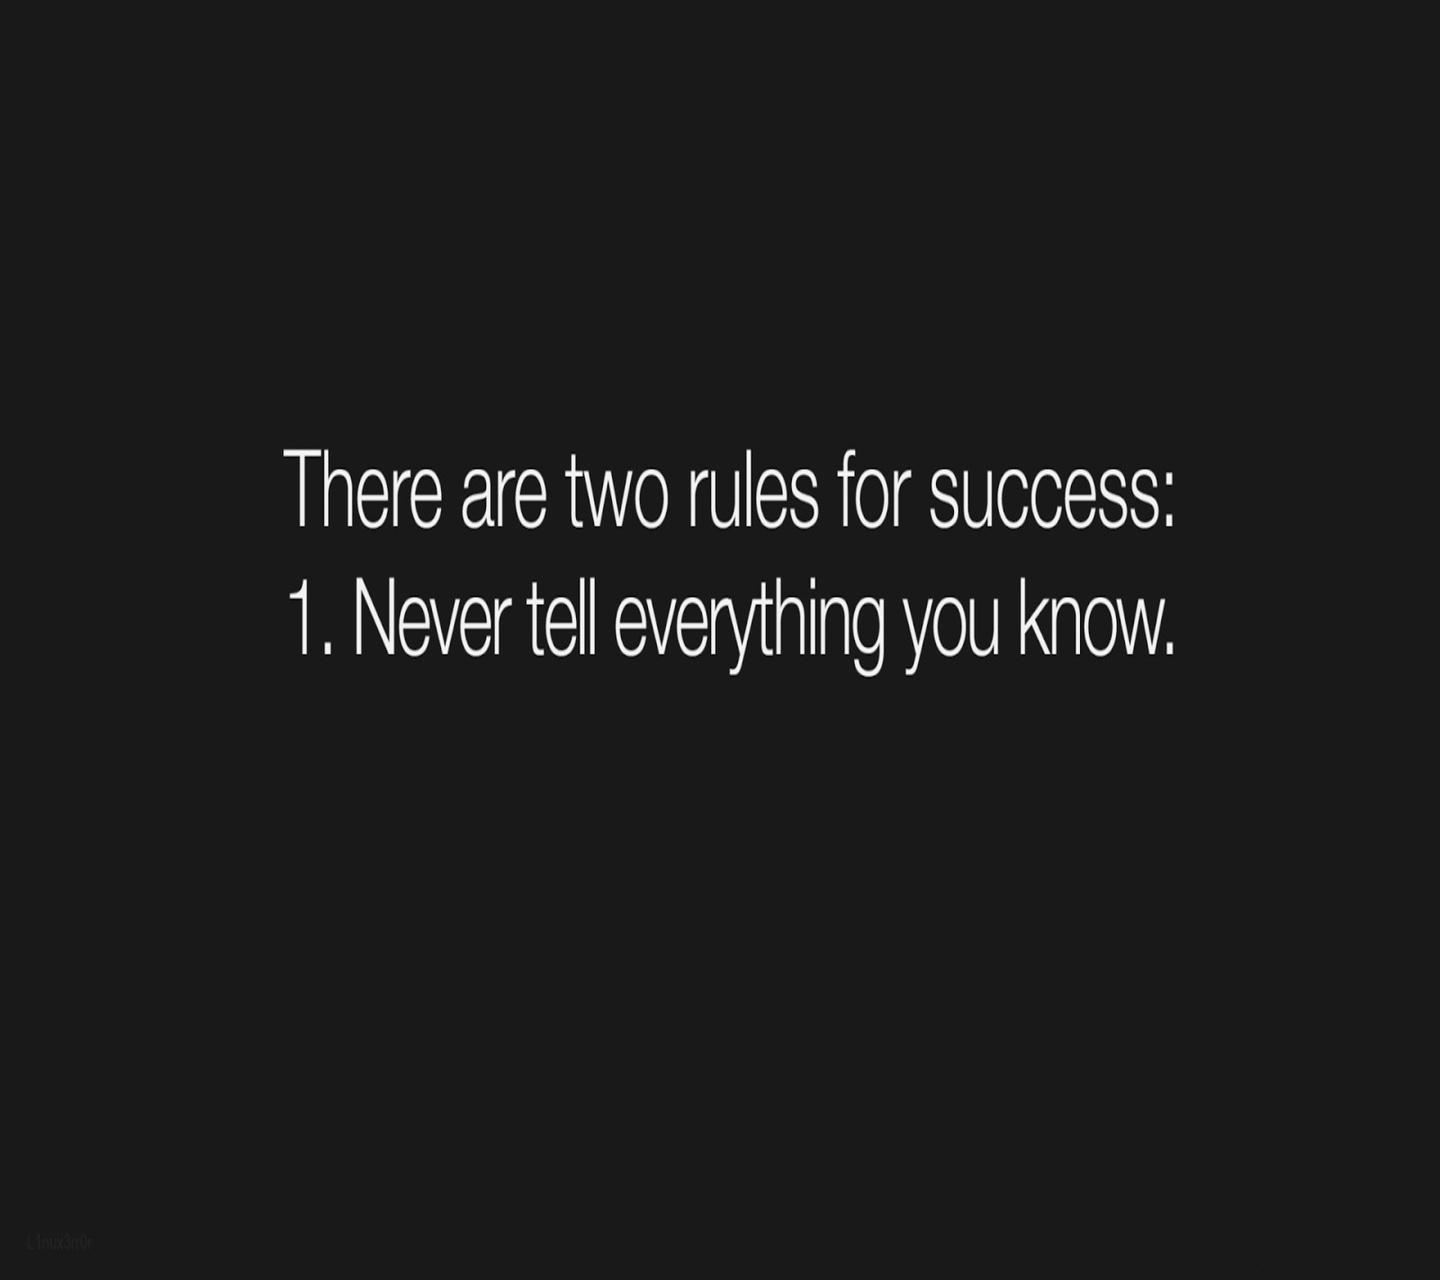 Quotes Wallpaper Hd For Laptop: Download Two Rules Of Life Hd Wallpaper For Laptop